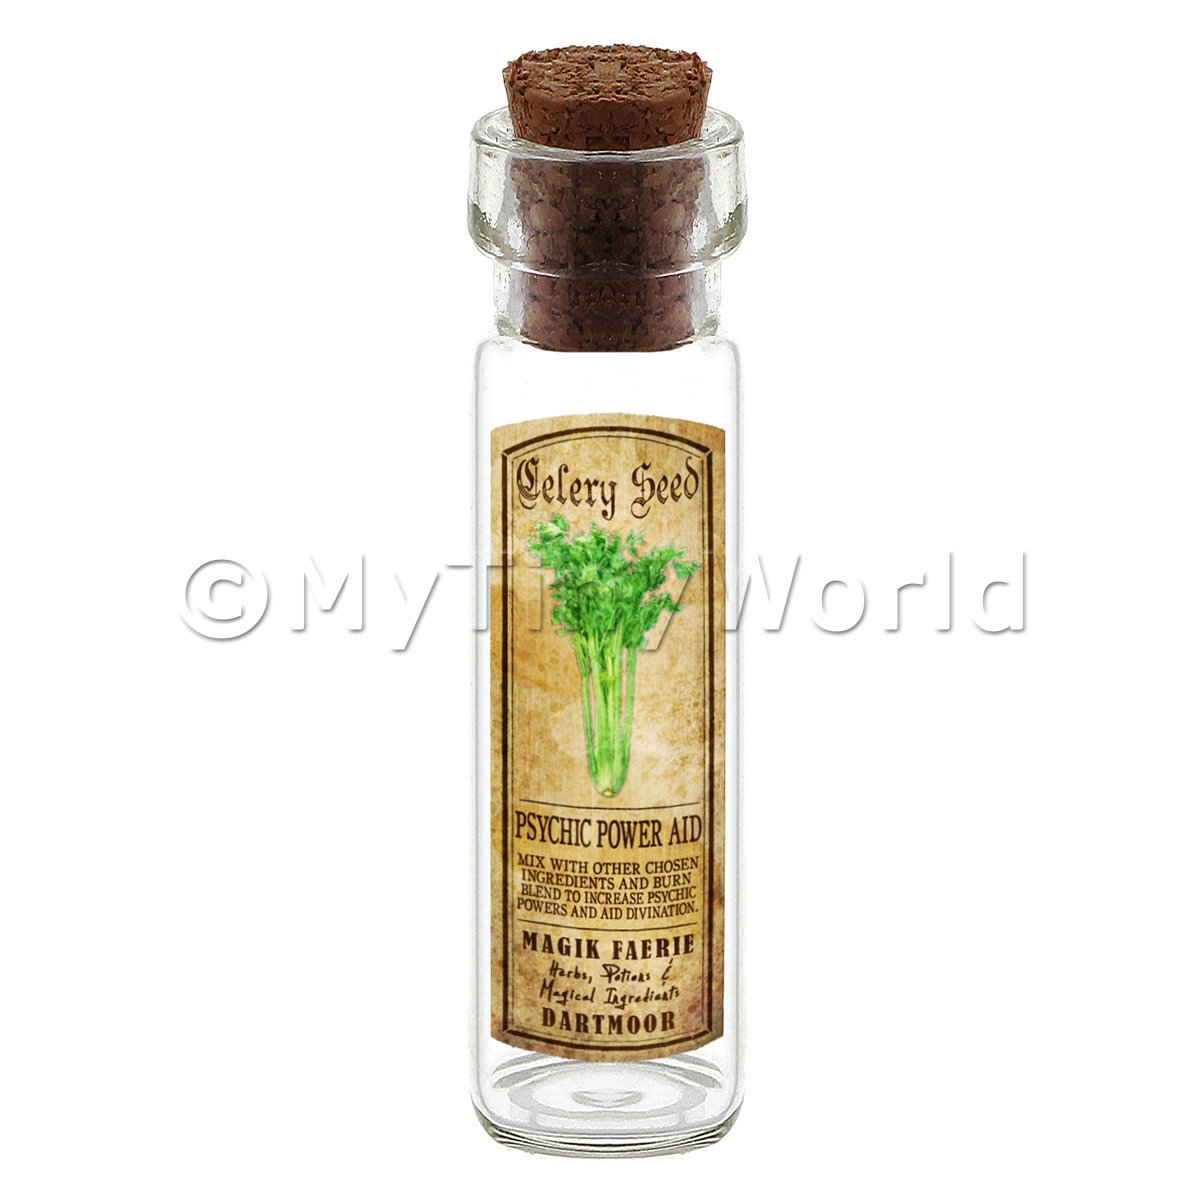 Dolls House Apothecary Celery Seed Herb Long Colour Label And Bottle